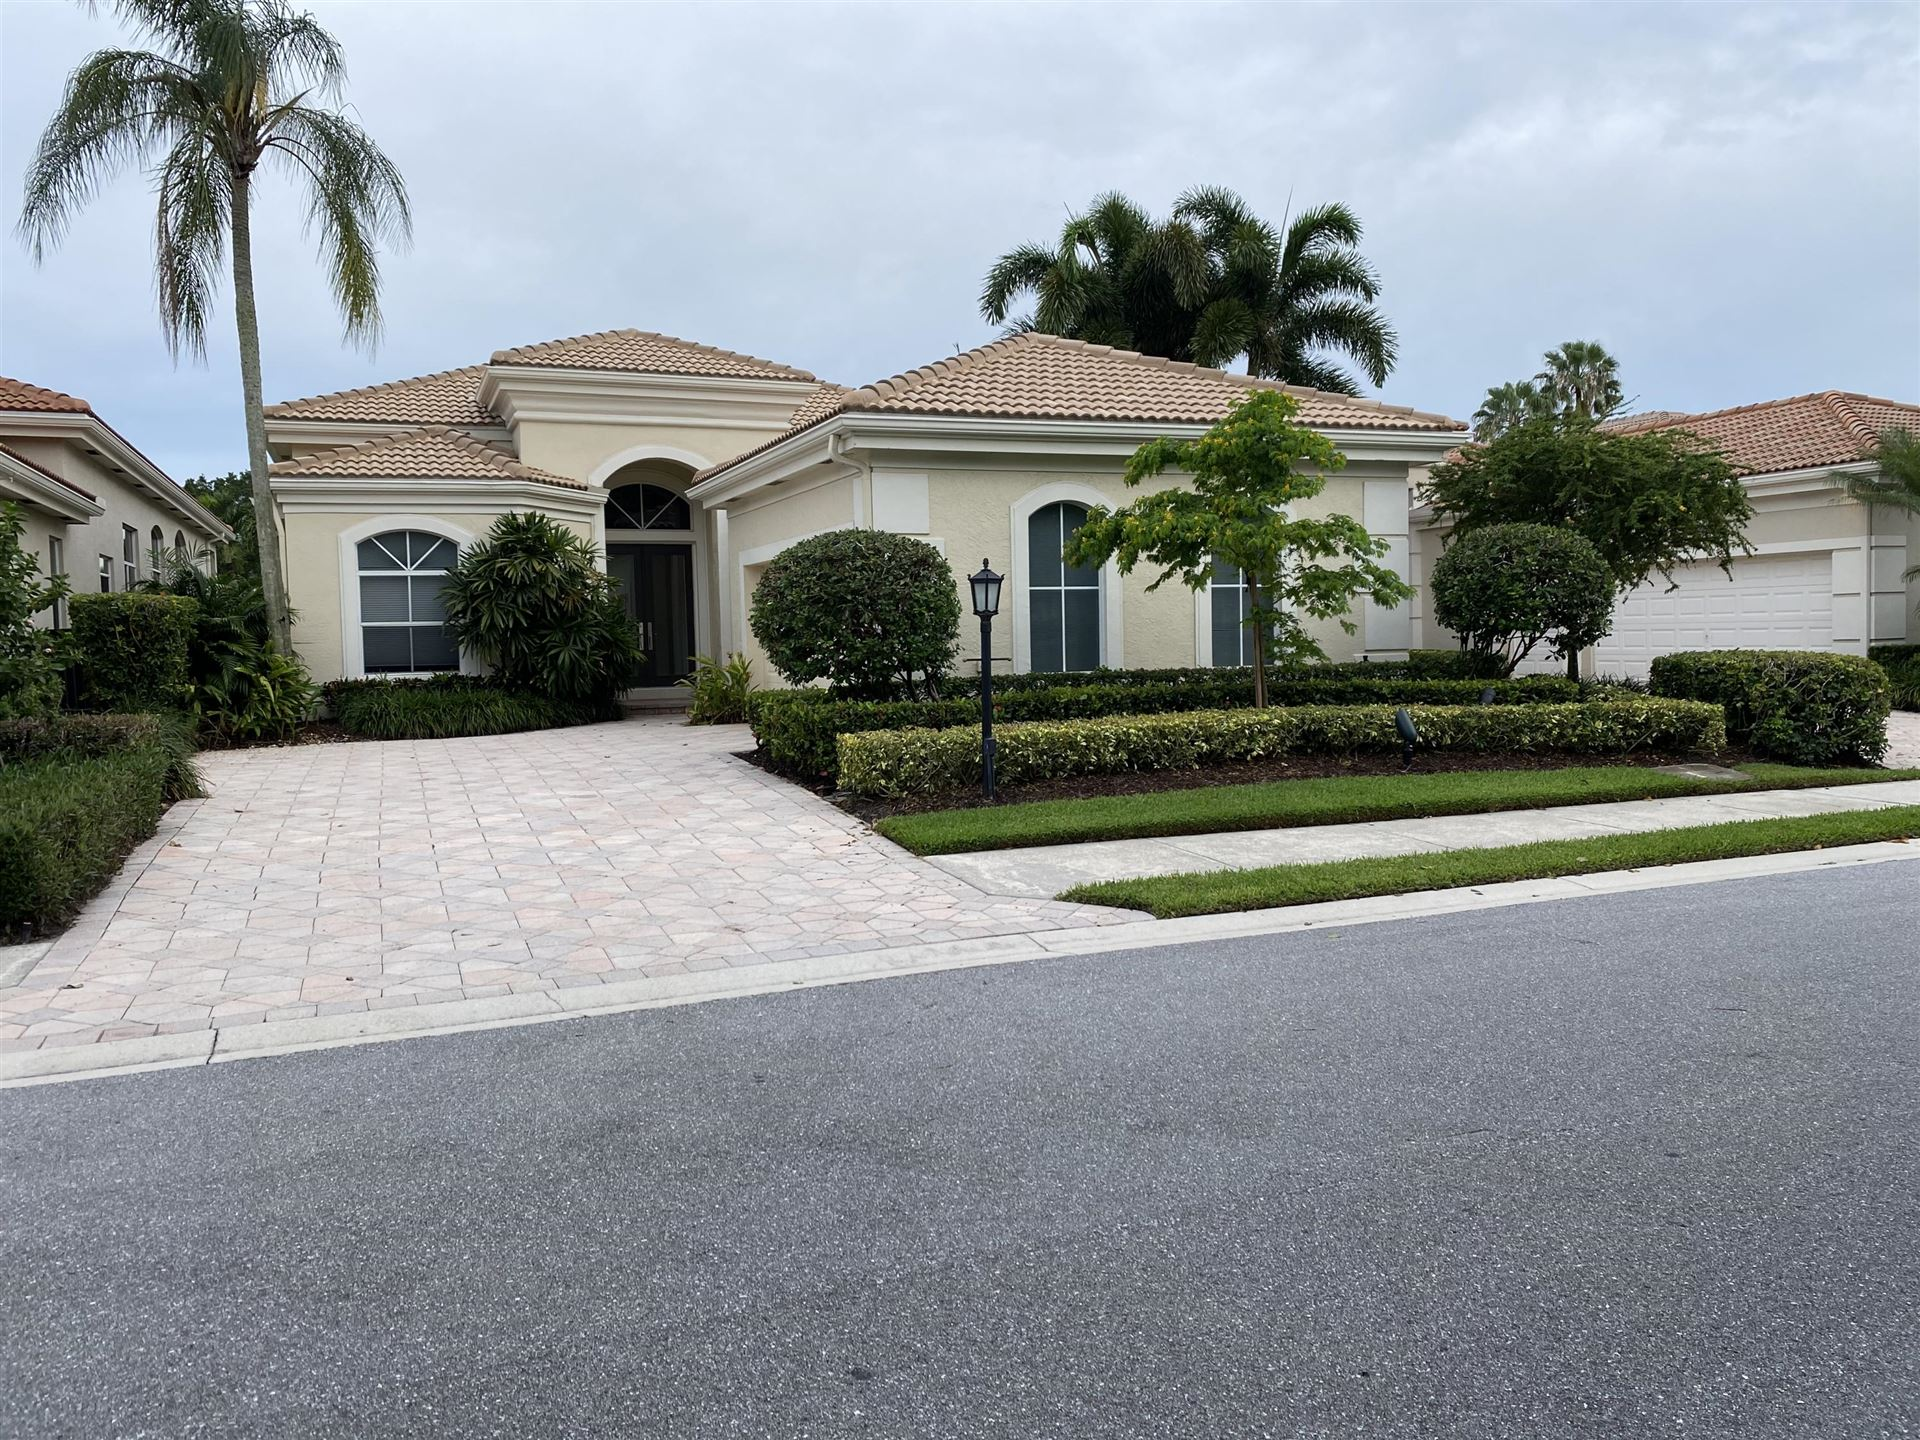 Photo of 112 Isle Dr, Palm Beach Gardens, FL 33418 (MLS # RX-10638338)